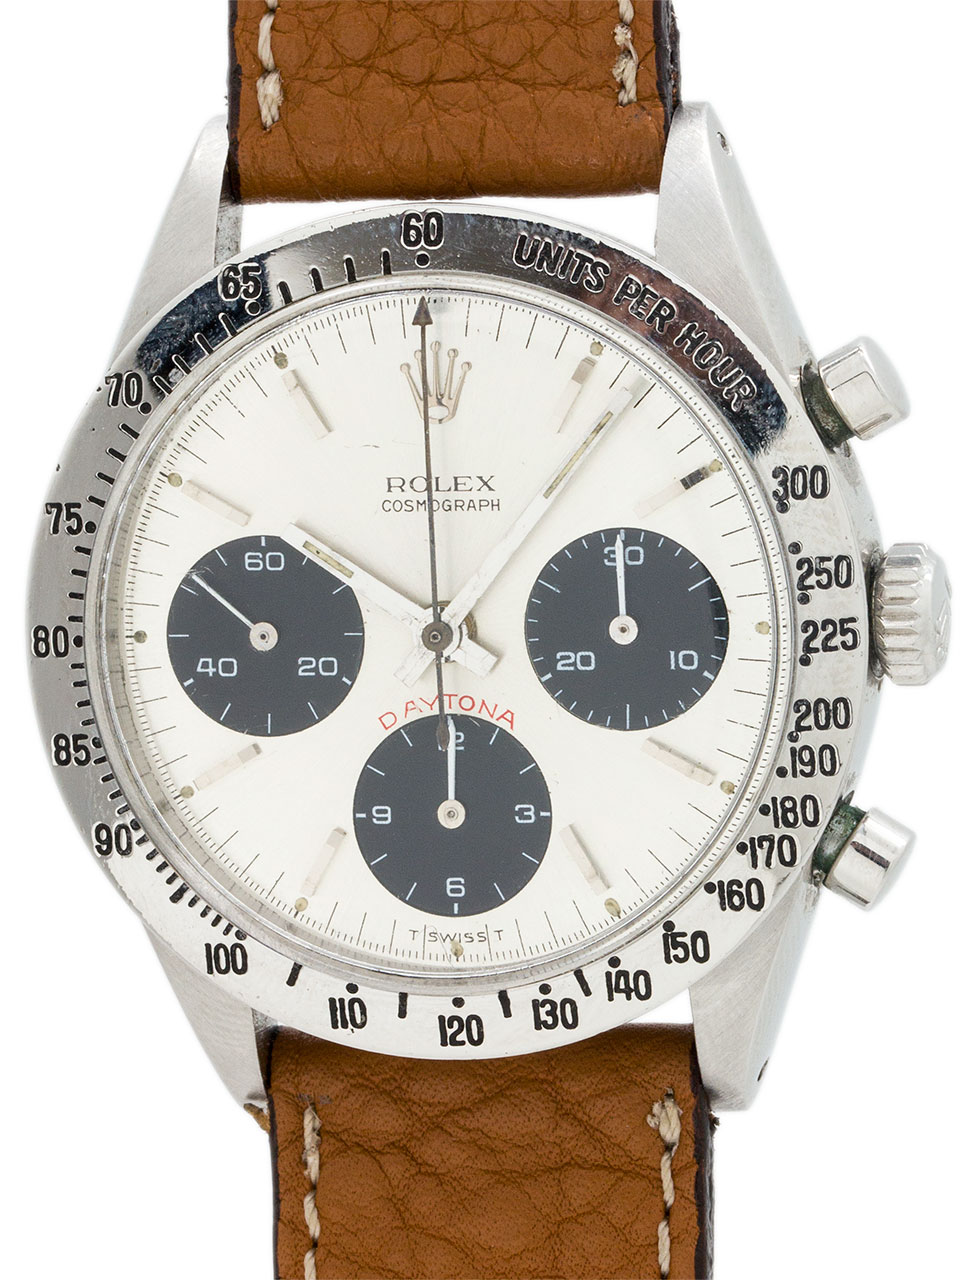 "Rolex Daytona ref 6239 ""Cherry Red"" circa 1966"